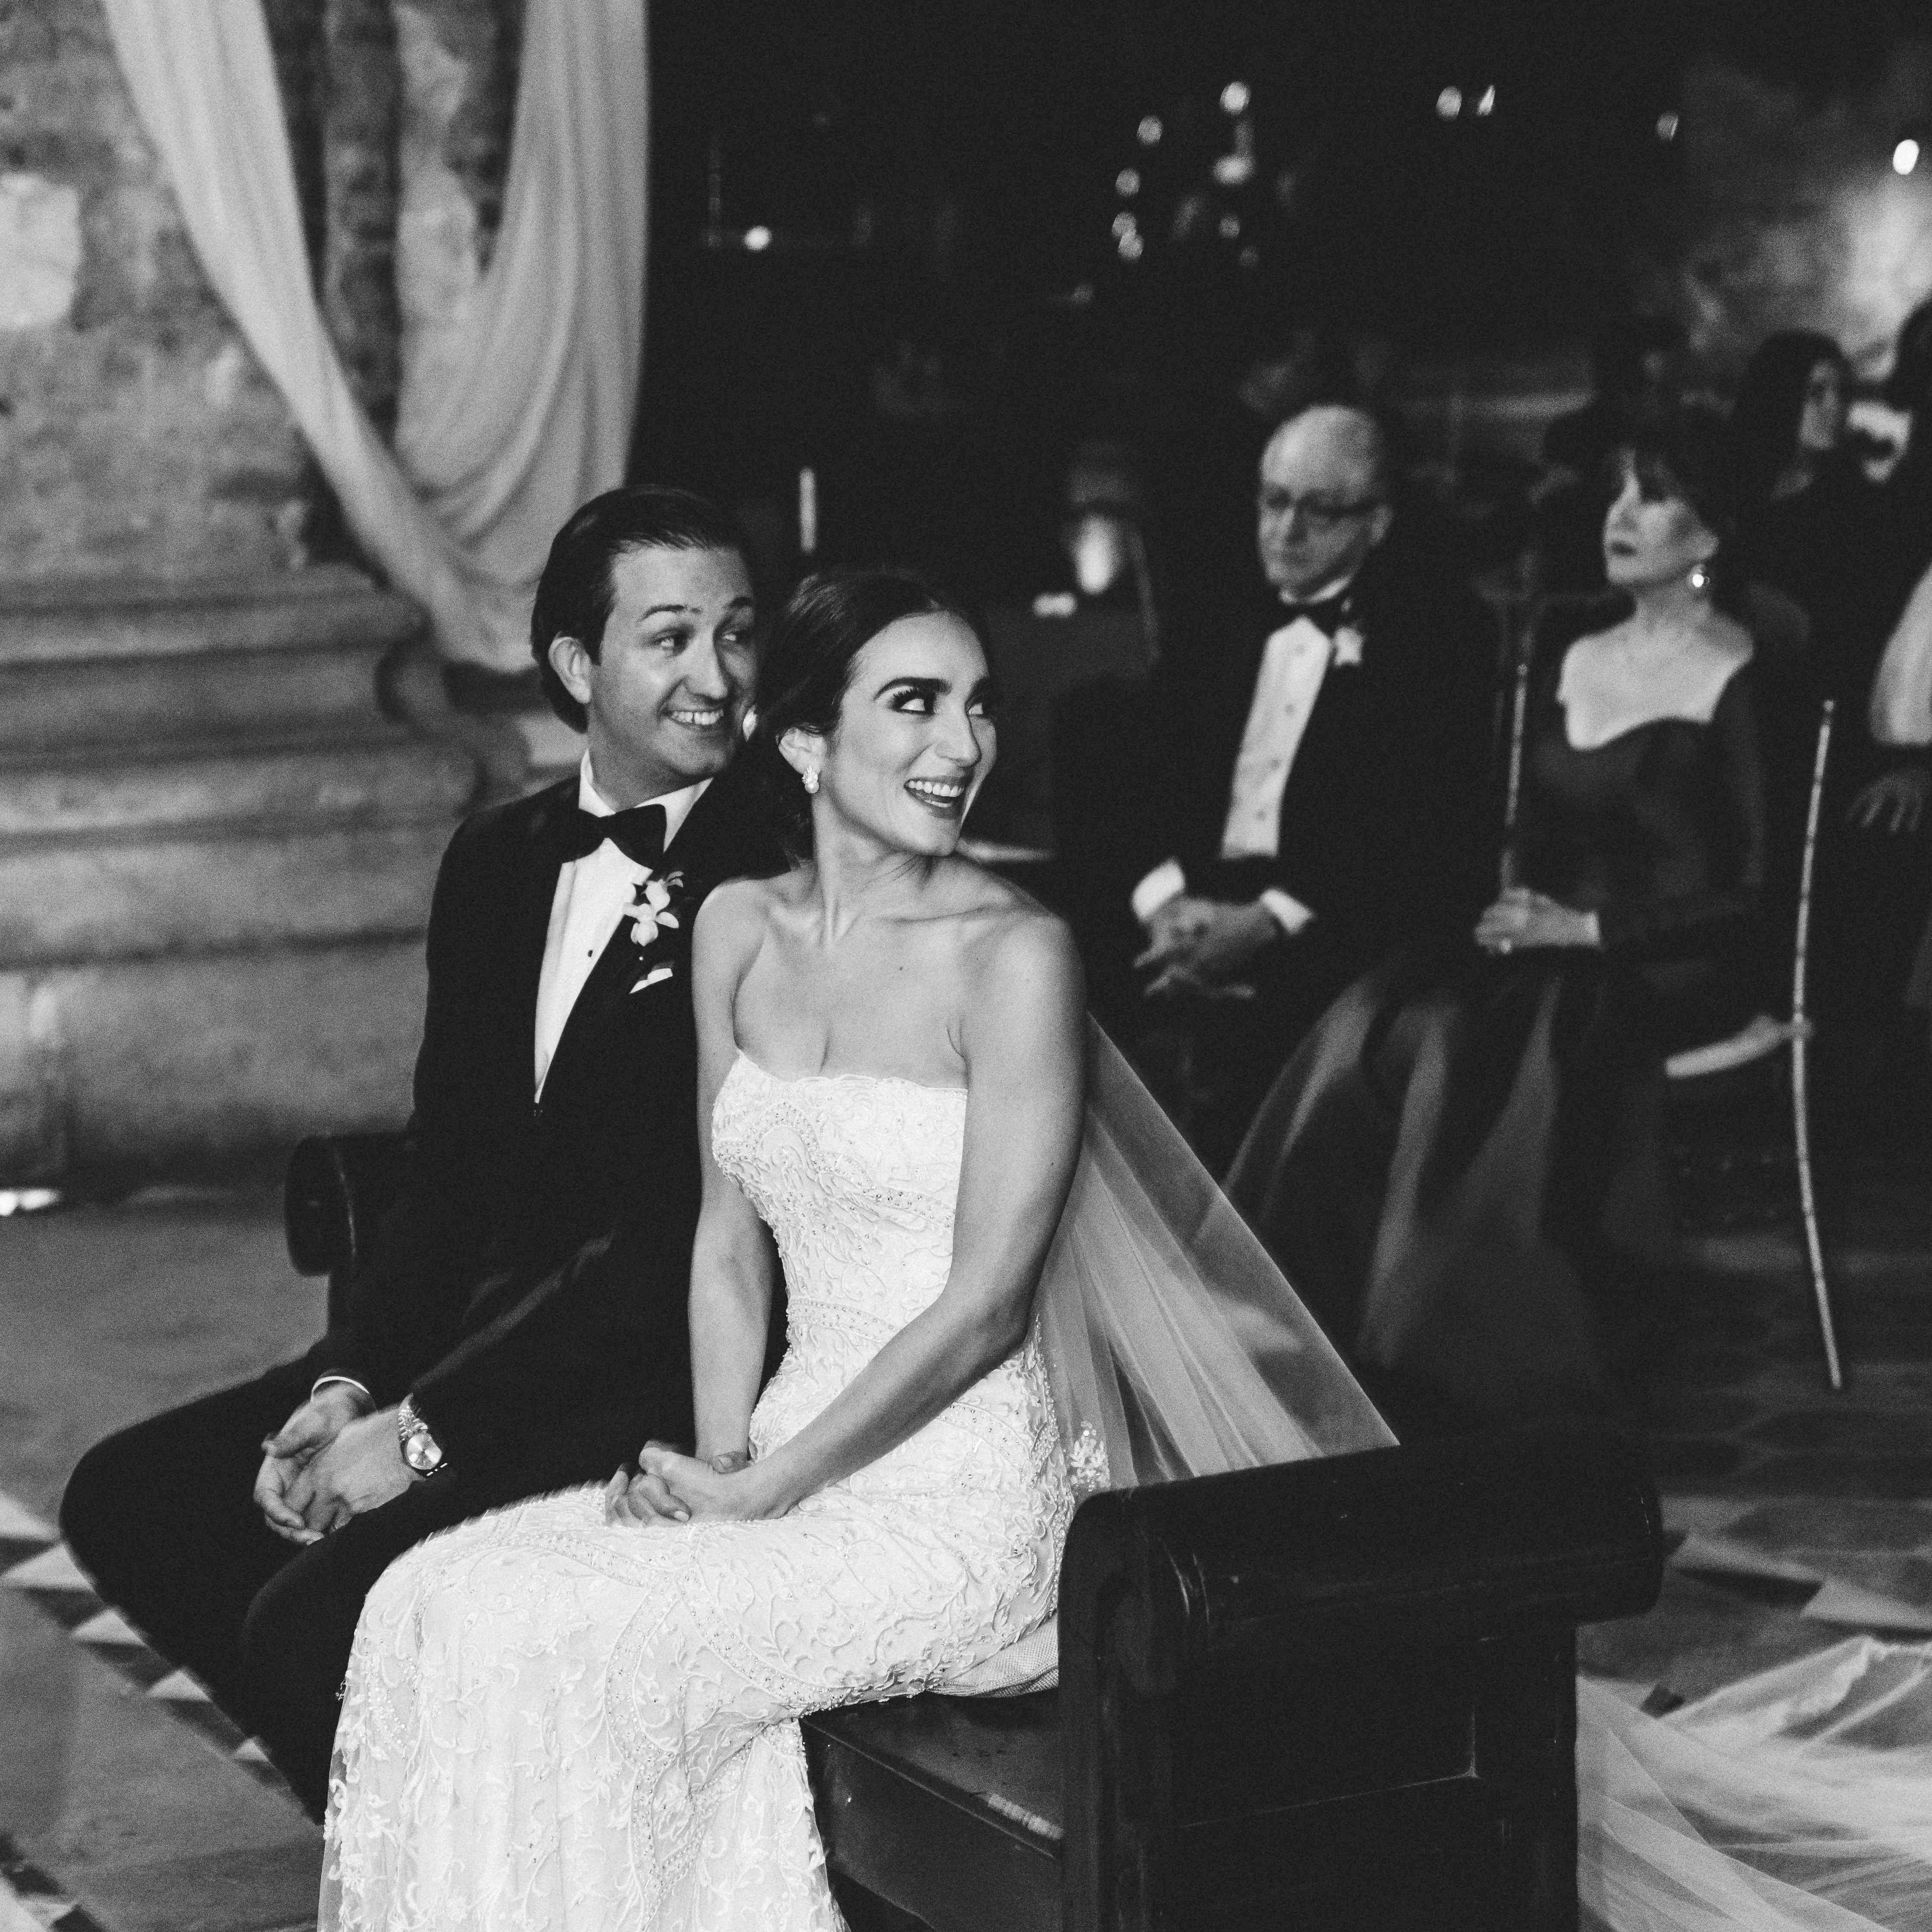 <p>bride and groom during ceremony</p><br><br>